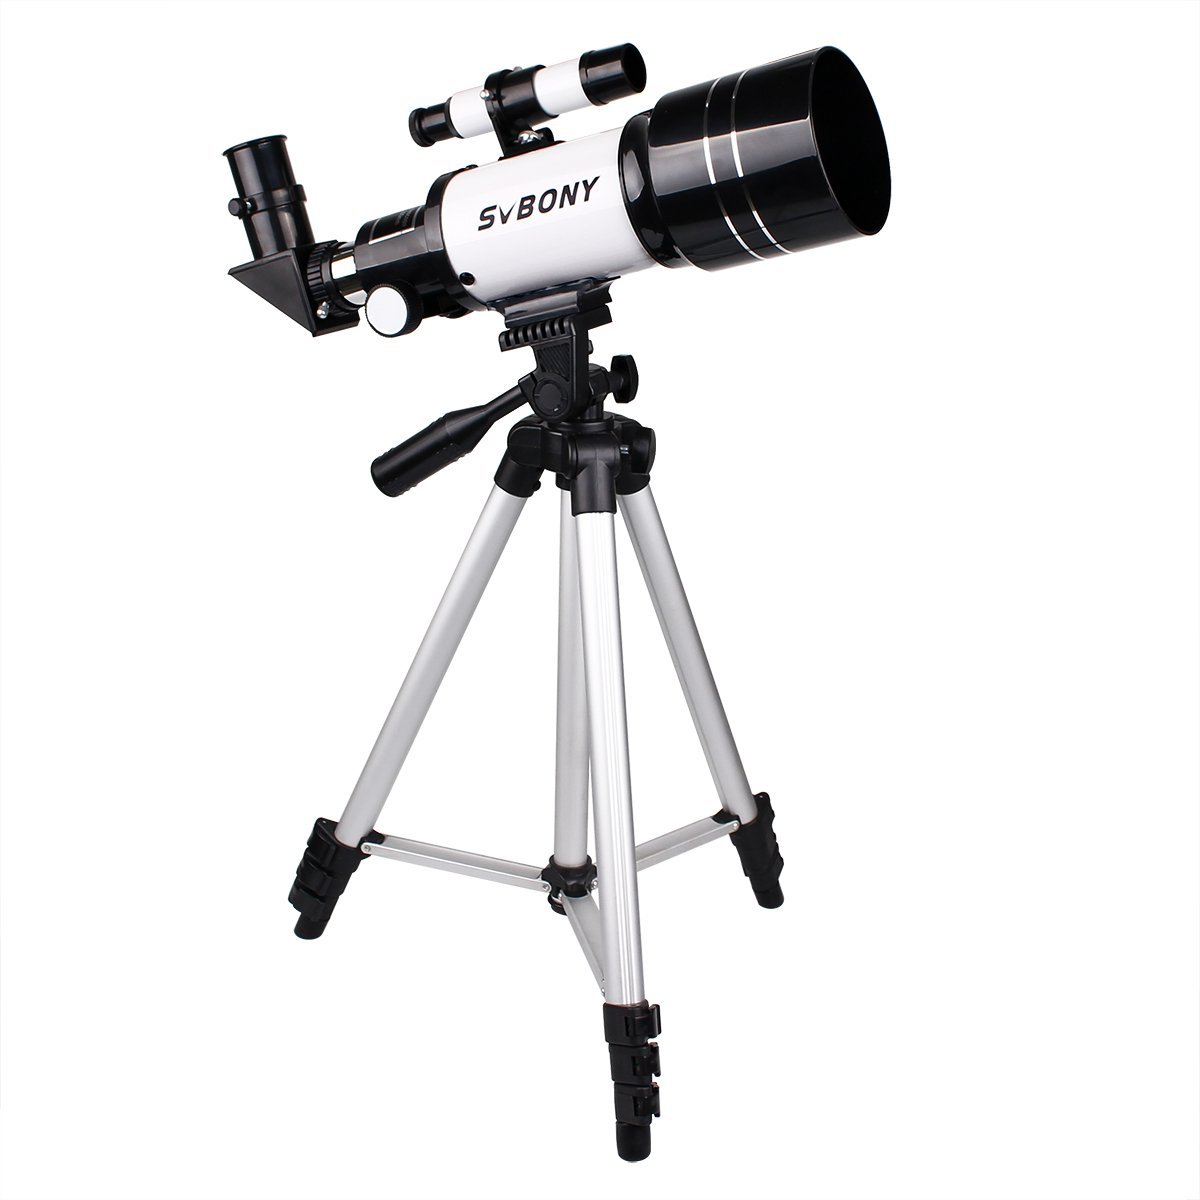 SVBONY SV15 Telescope 70mm Kids Telescopes for Astronomy Beginners Educational Science Telescope Come with 3 Section Tripod See the Moon